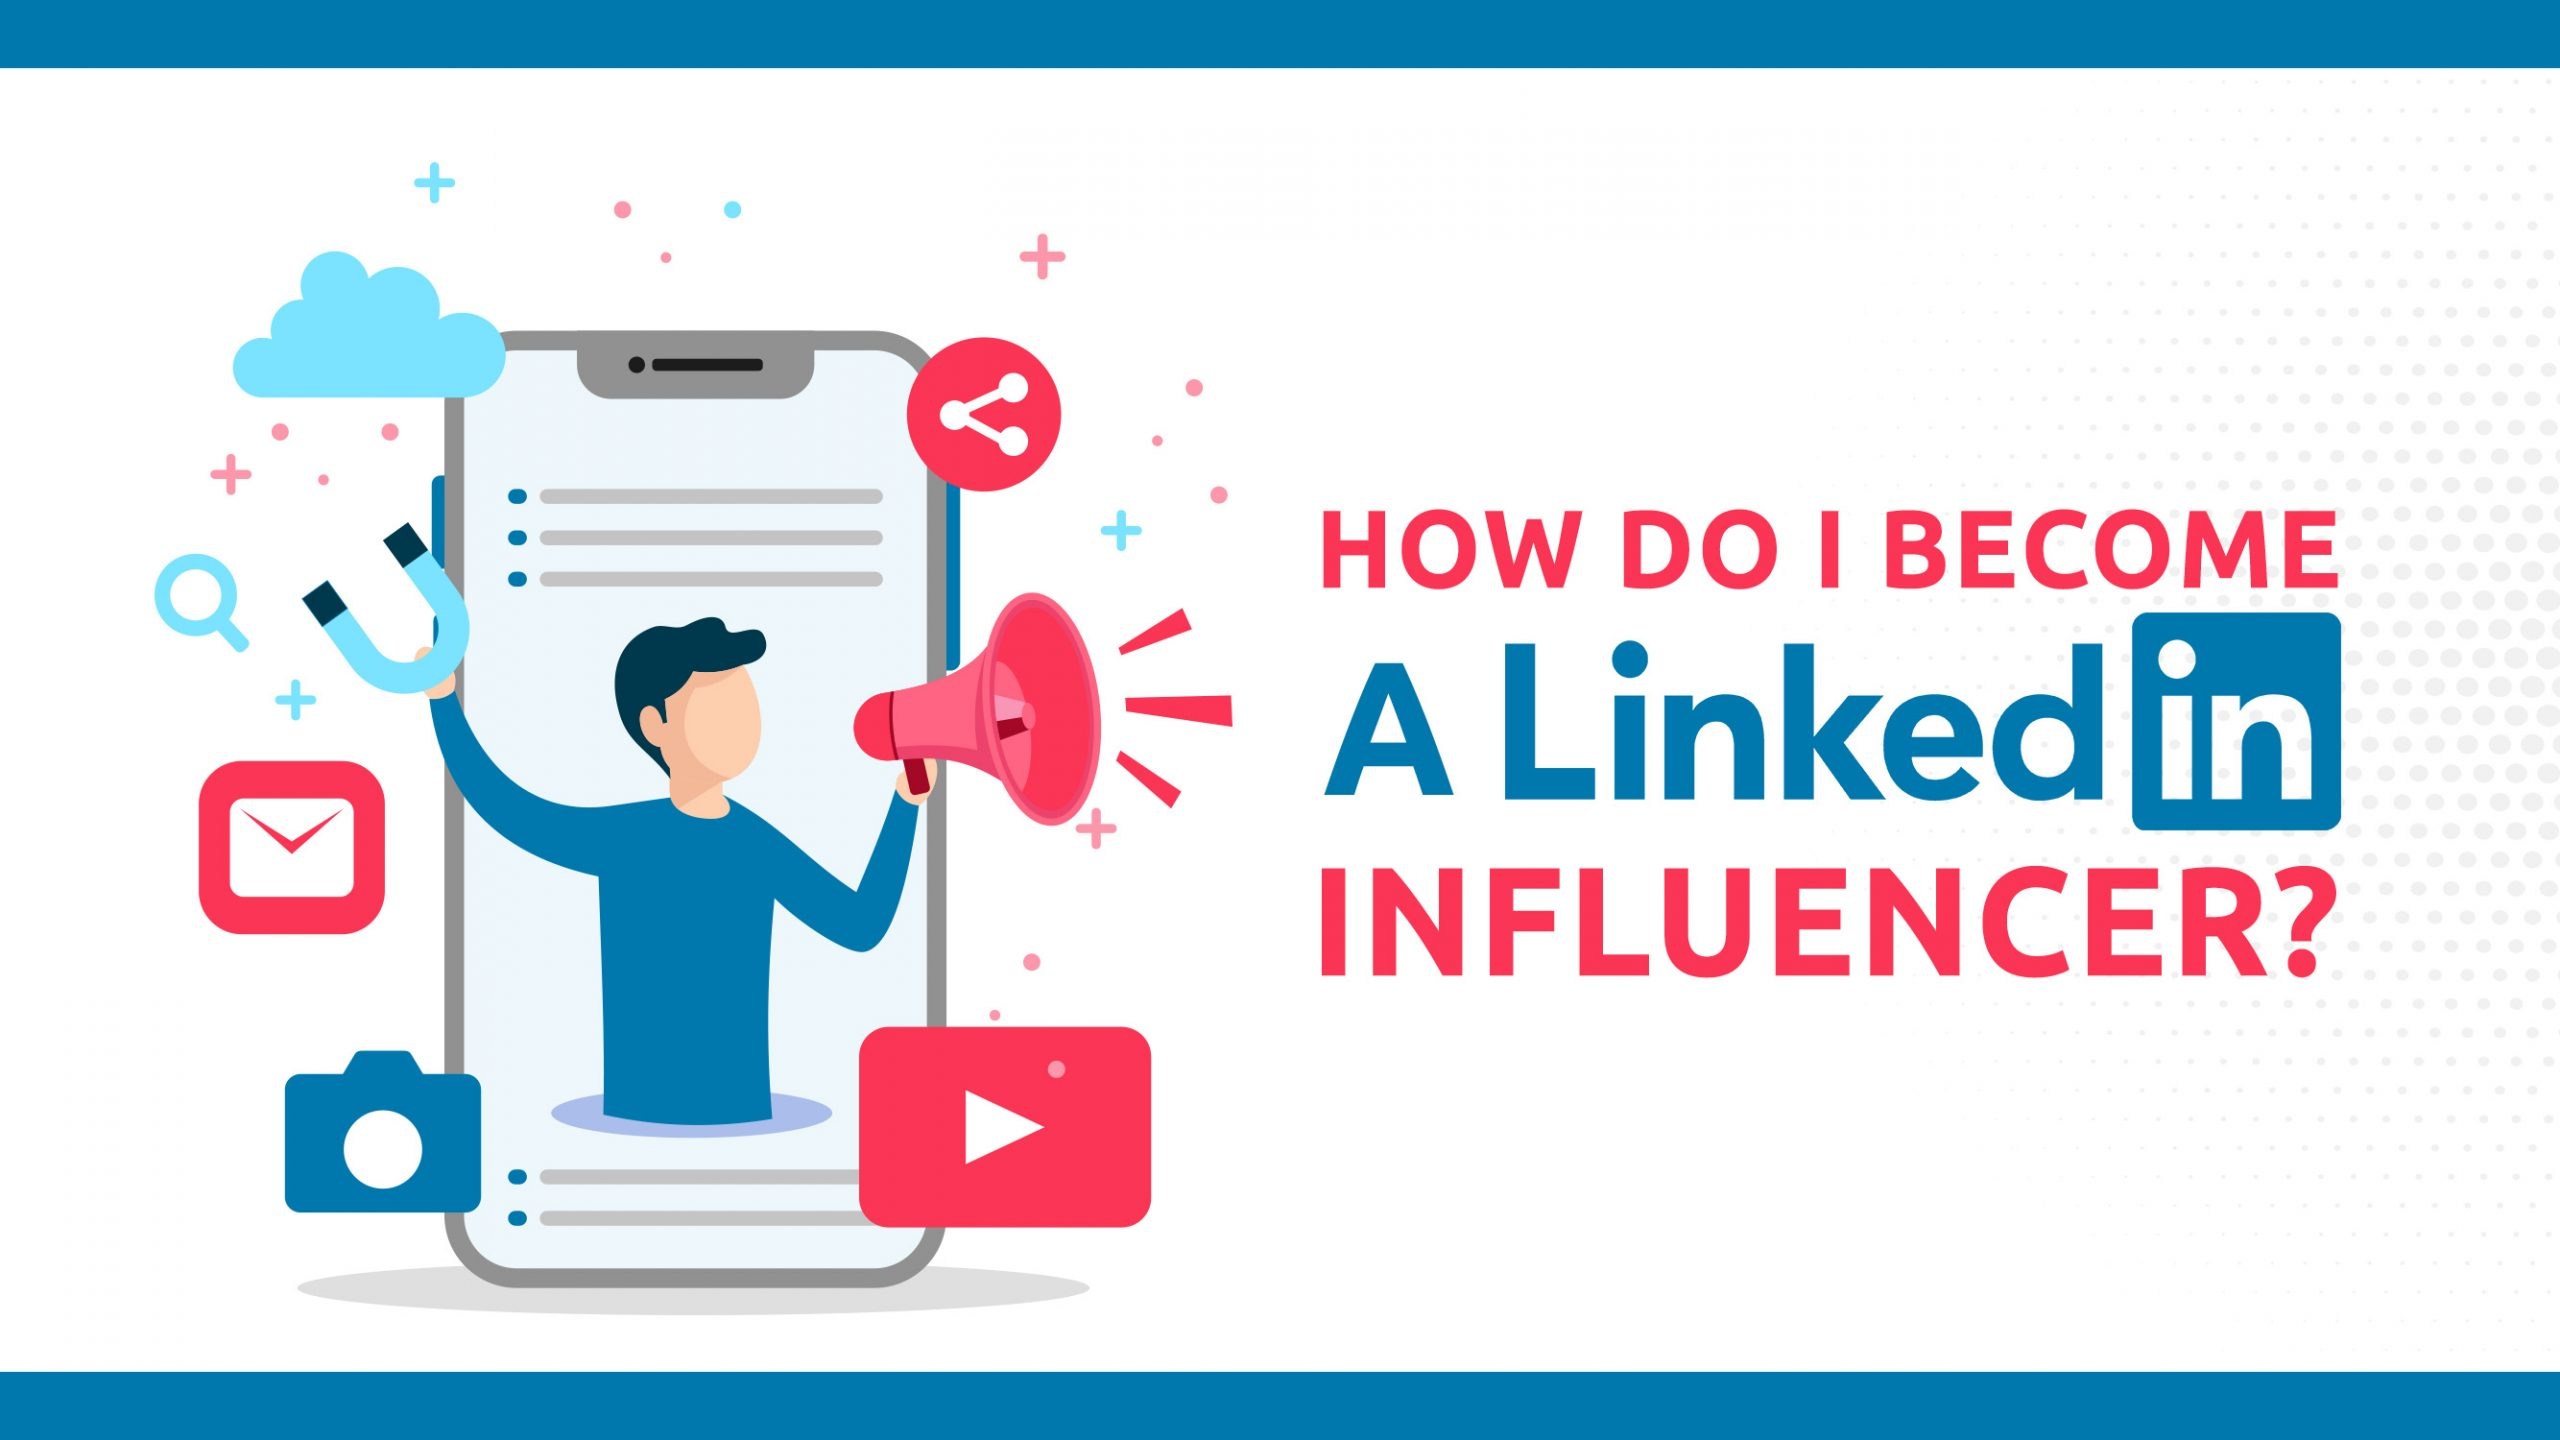 Comment devenir un influenceur LinkedIn ?